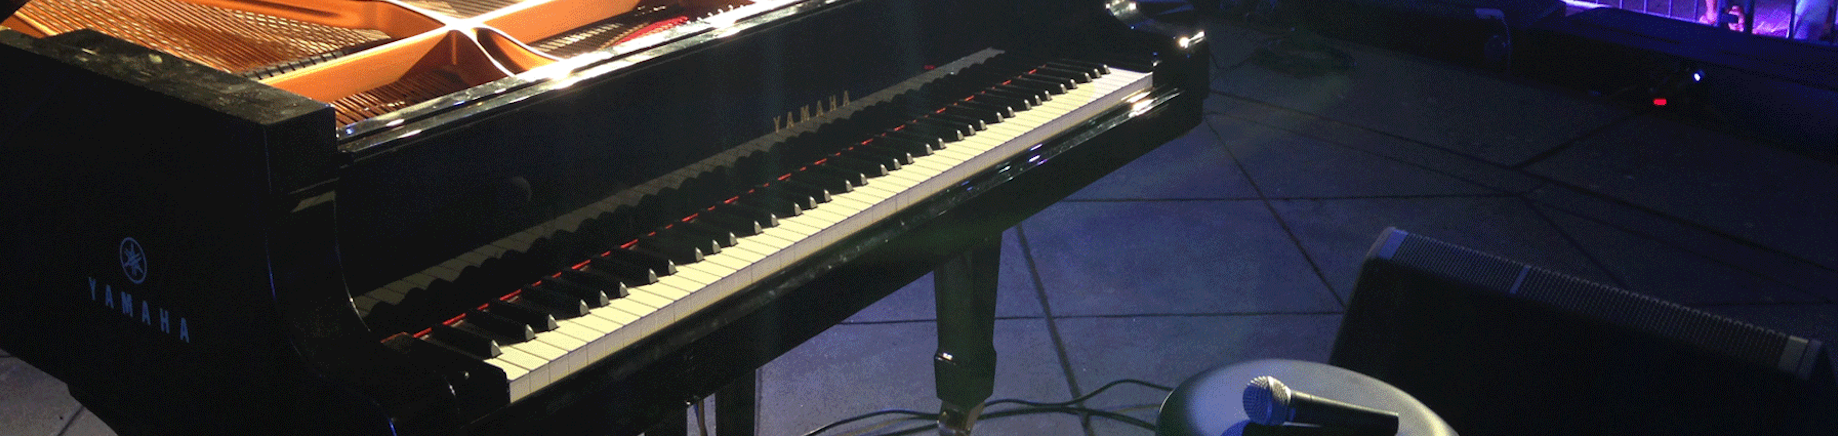 Close up of a Yamaha piano on stage